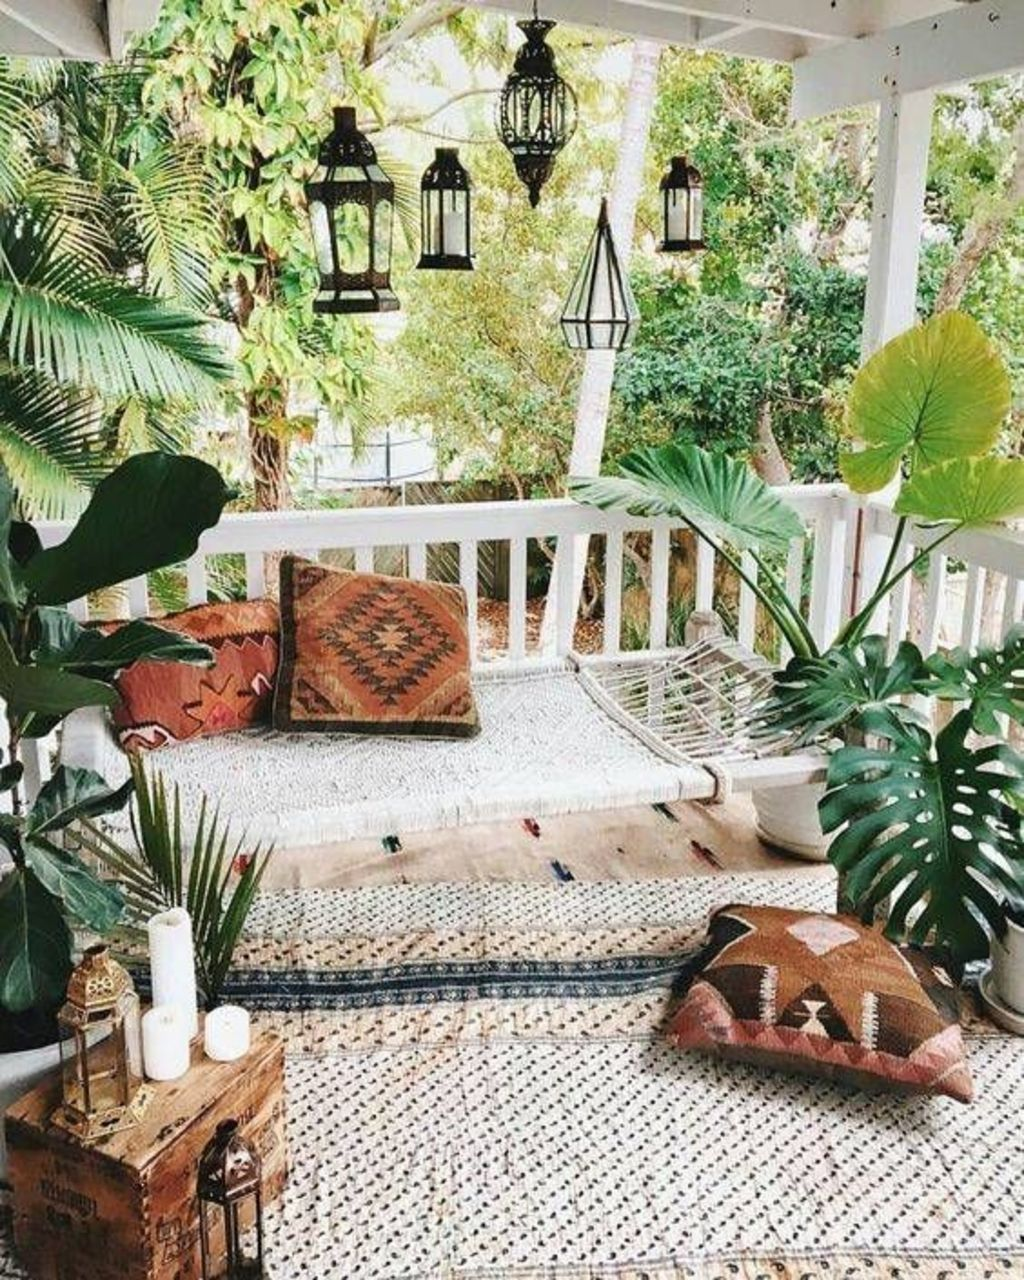 Back porch design ideas that perfect for every home as special space to make it anything you want Part (11)